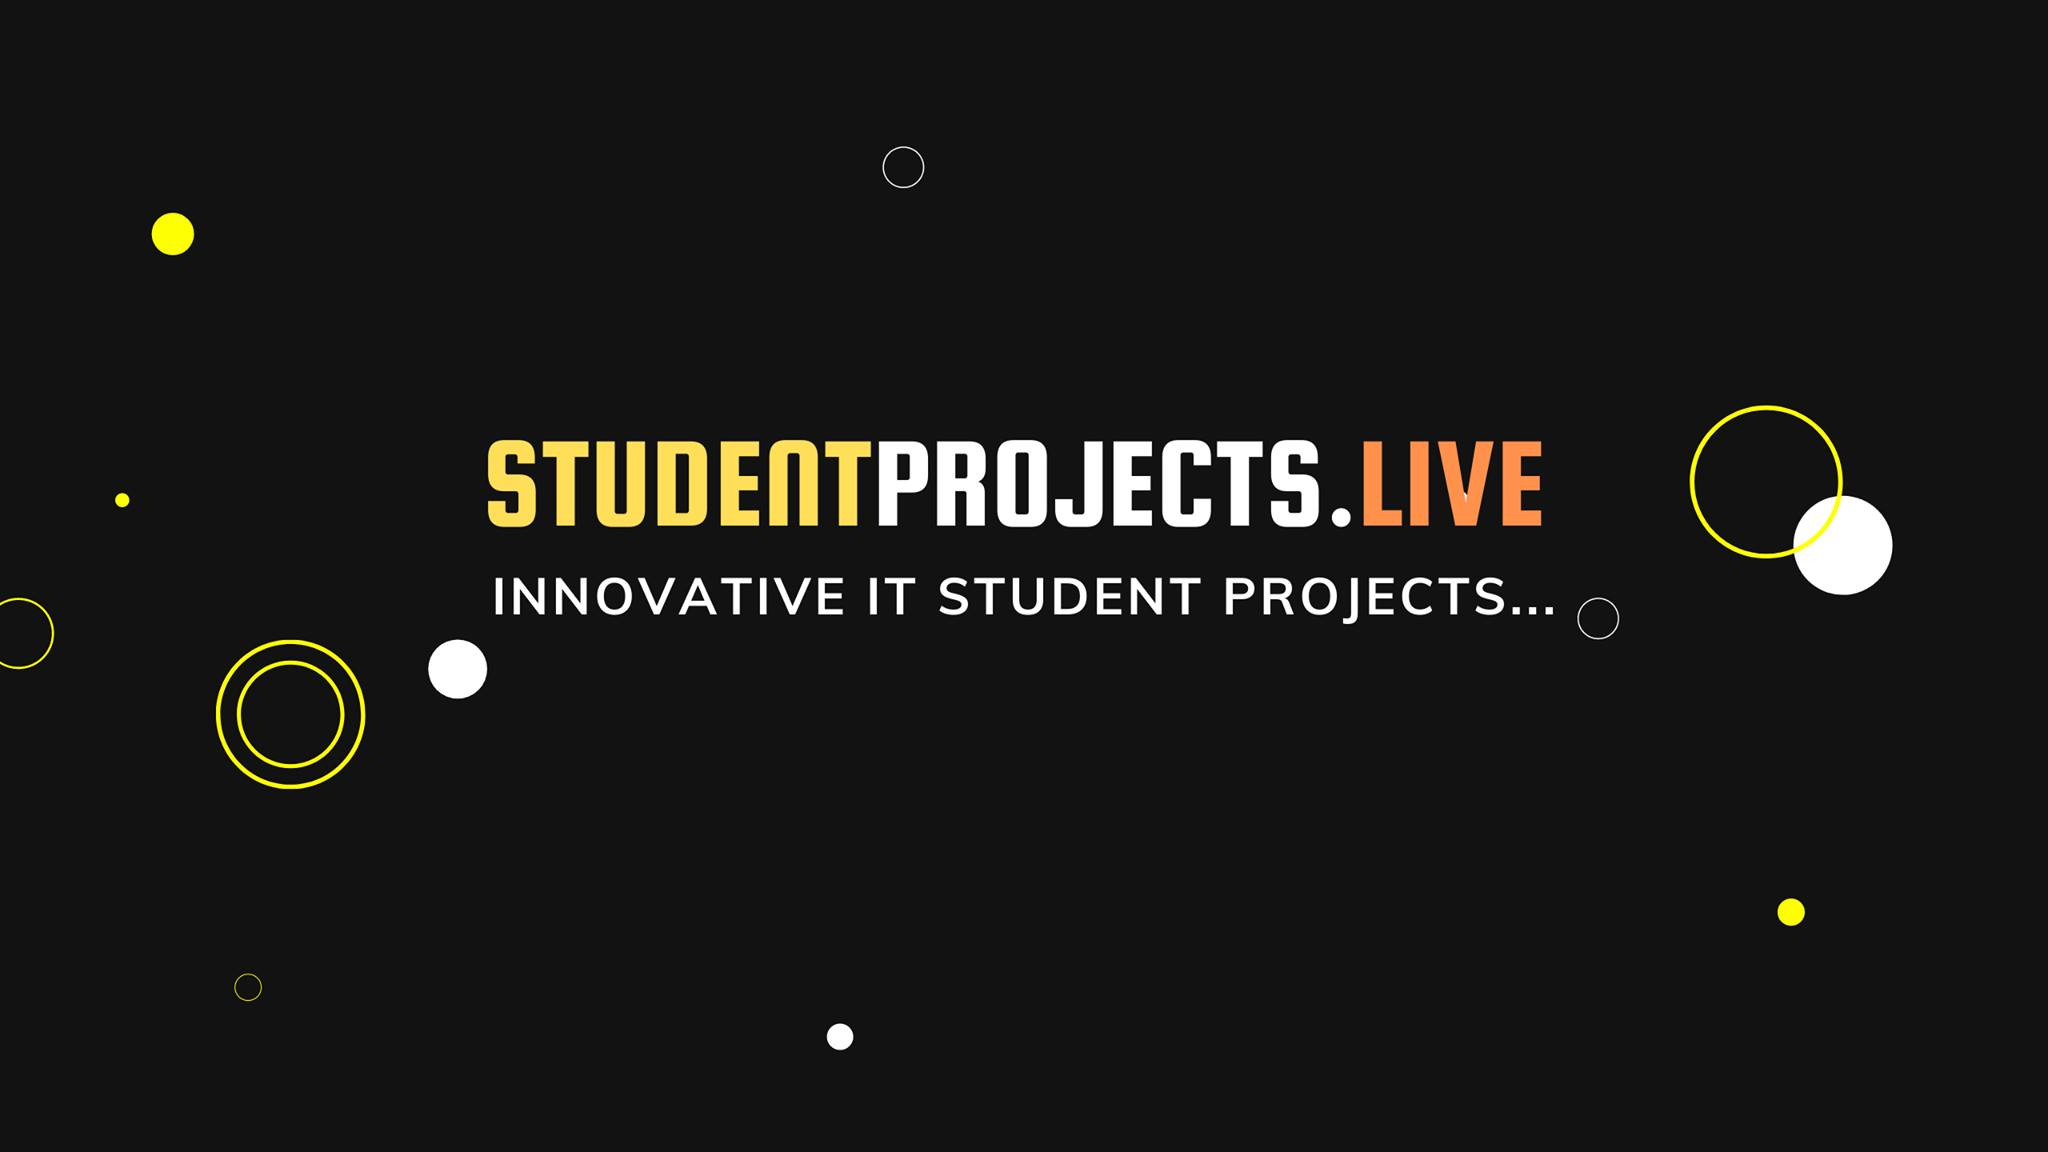 StudentProjects.Live